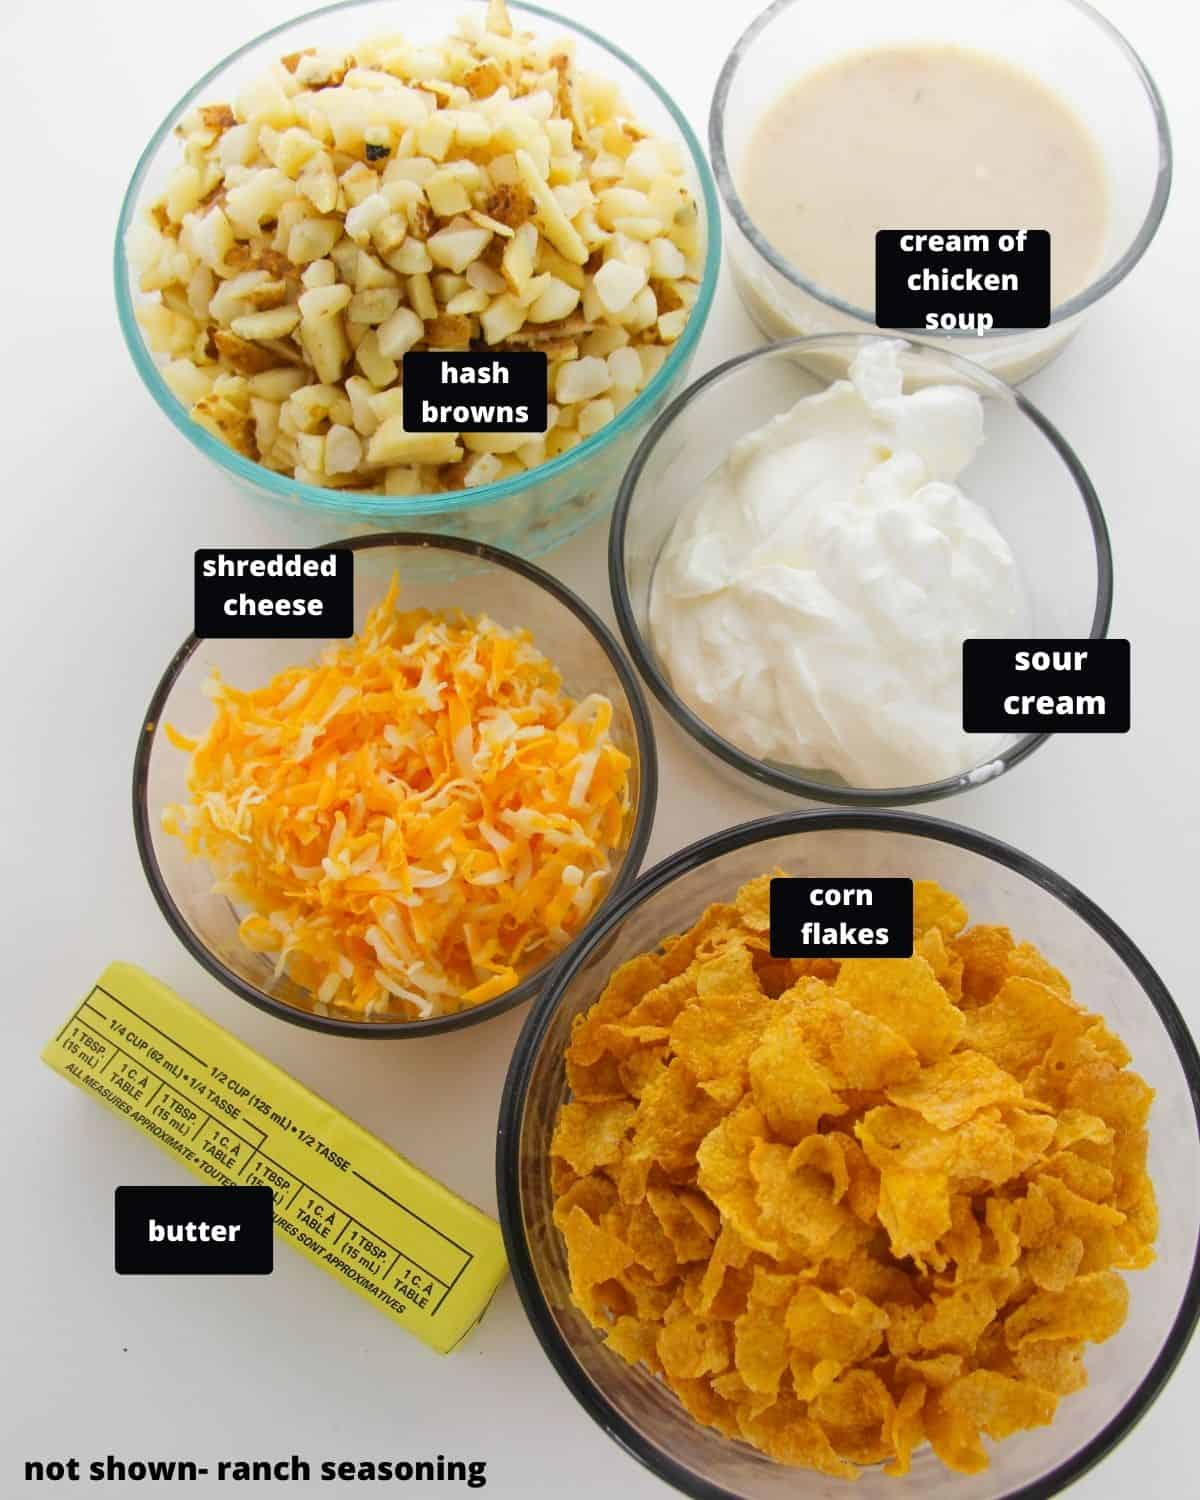 Ingredients hash browns, cream of chicken soup, cheese, corned flakes, sour cream, and butter.